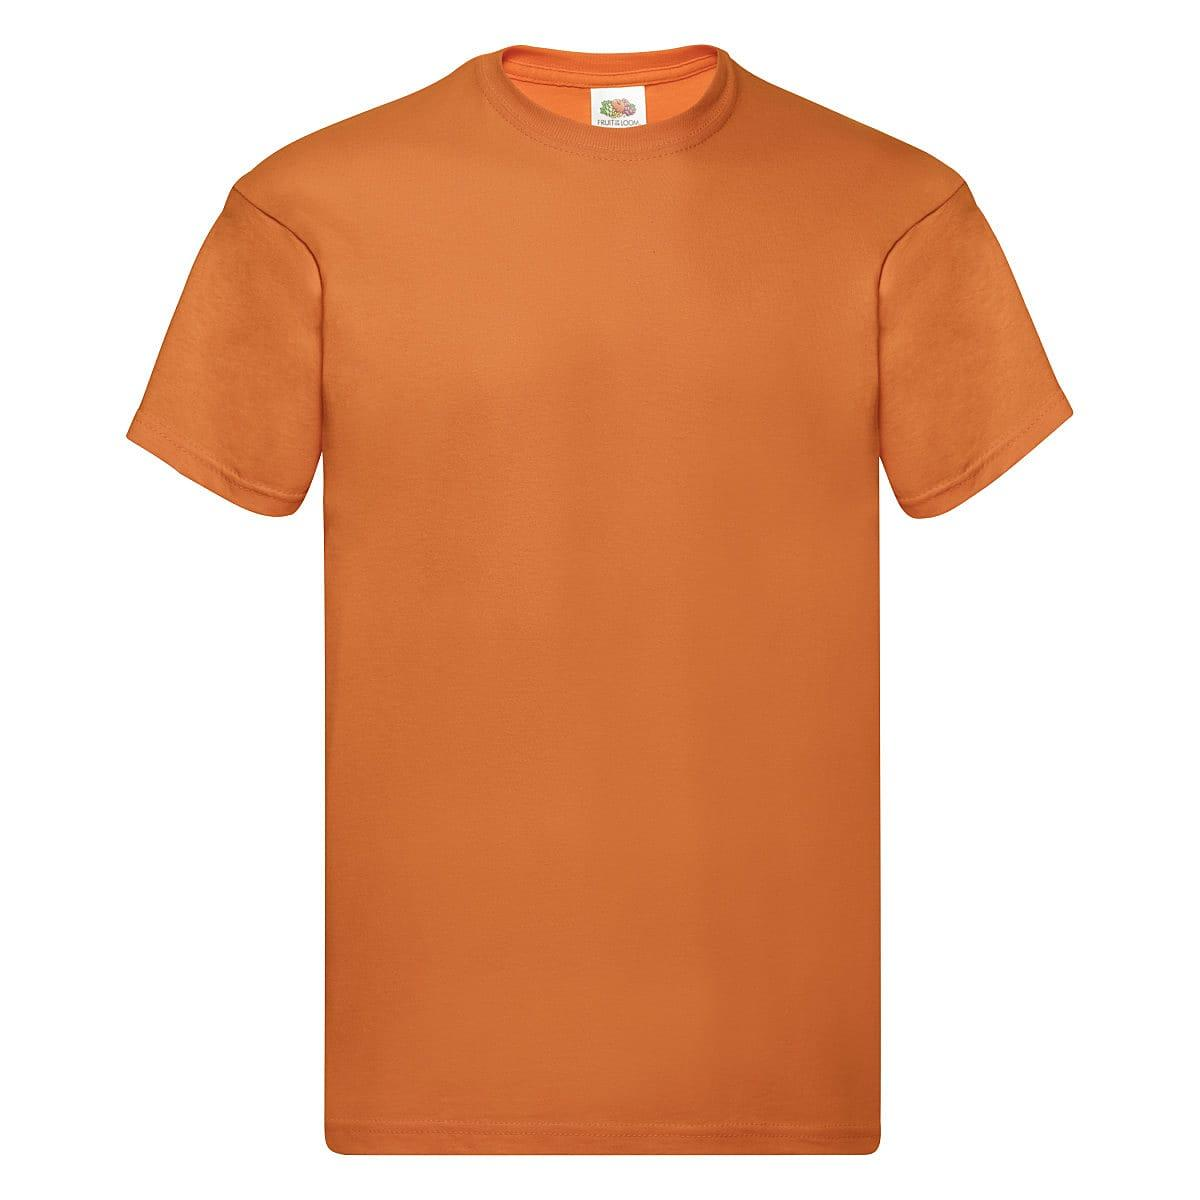 Fruit Of The Loom Original Full Cut T-Shirt in Orange (Product Code: 61082)